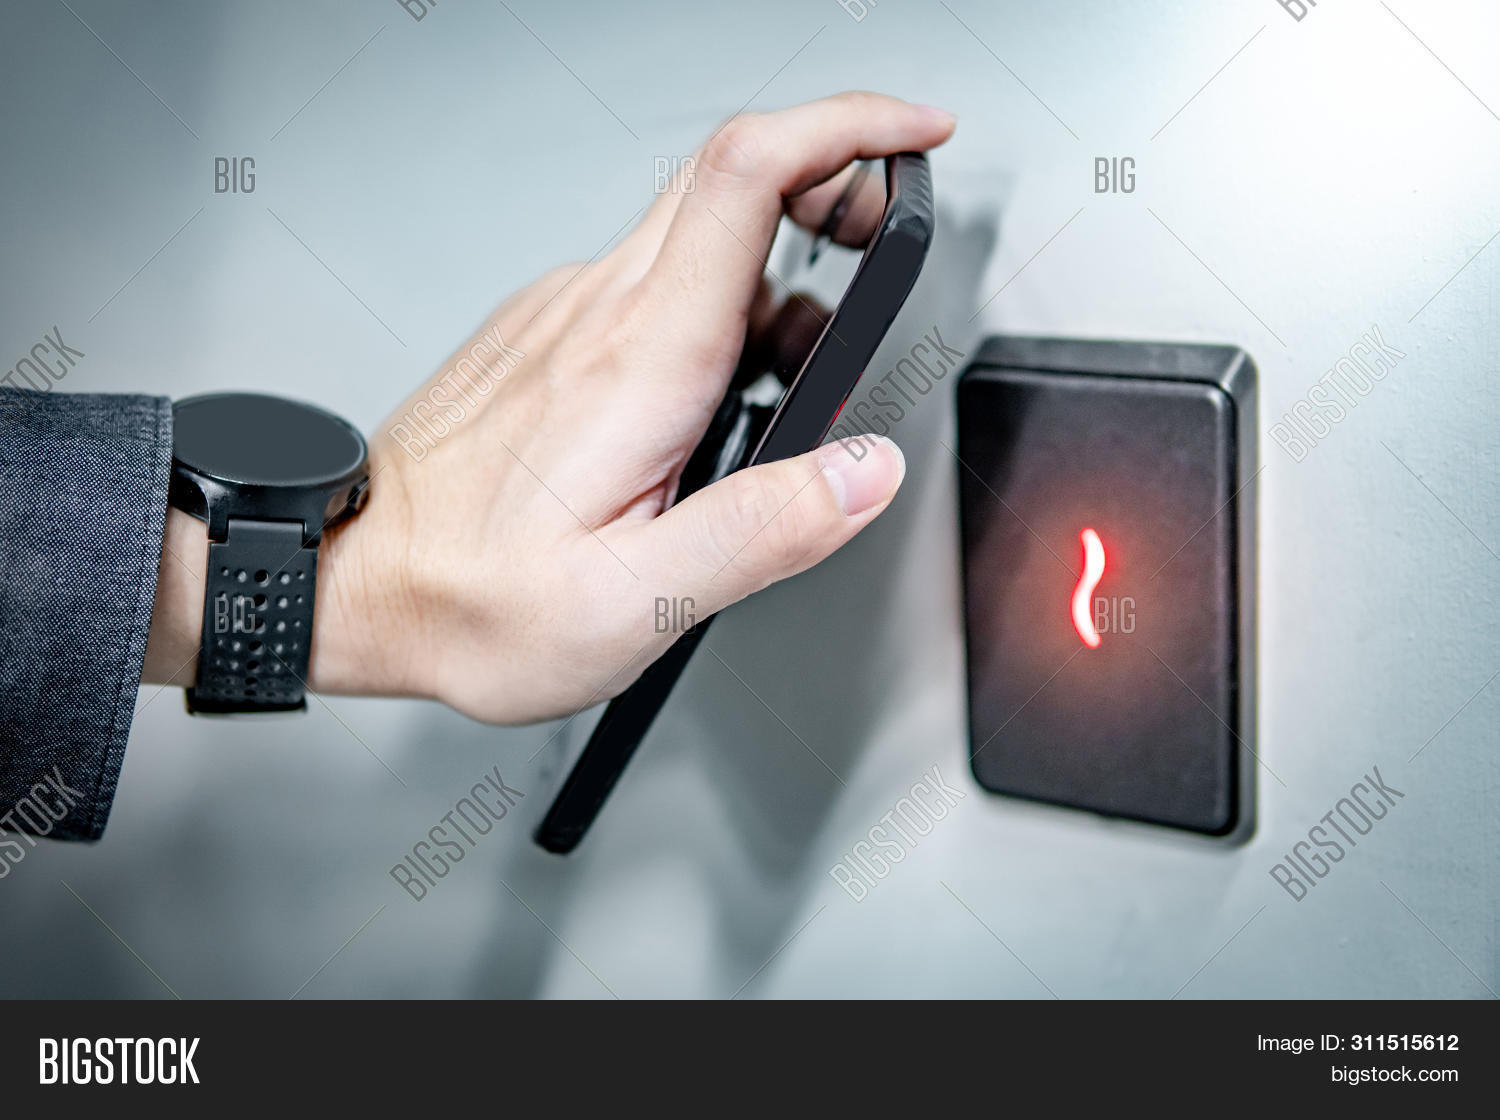 Male Hand Using Smartphone For Sensor Scanning. Infrared Sensor Technology For Automatic Door Access